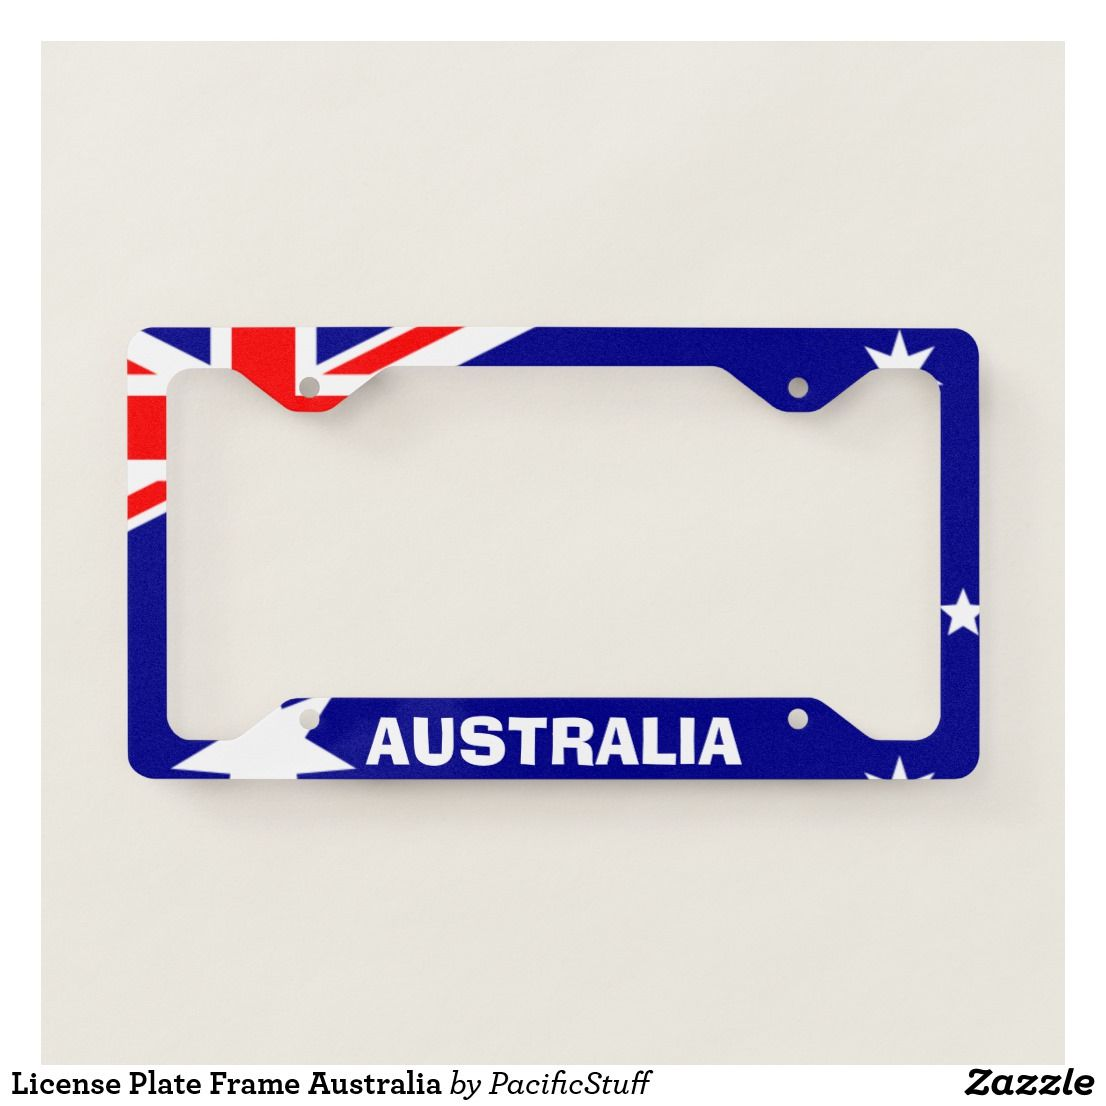 Picture Frames Australia License Plate Frame Australia Zazzle International License